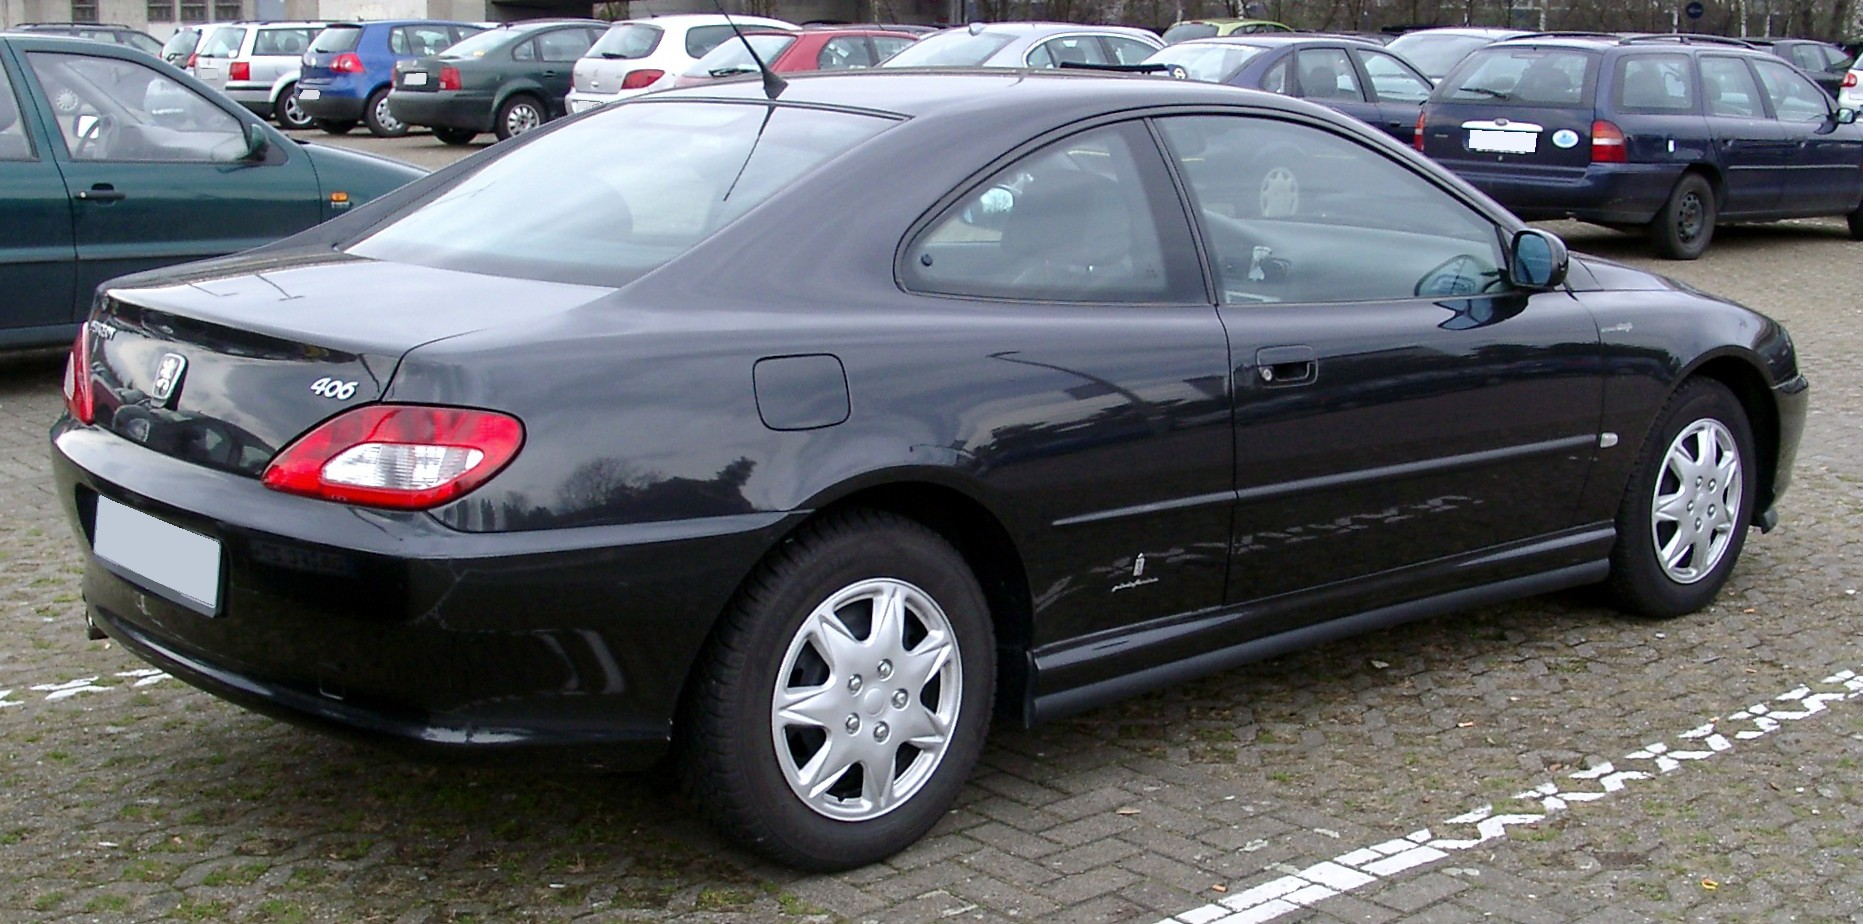 Peugeot-406-Coupe-2